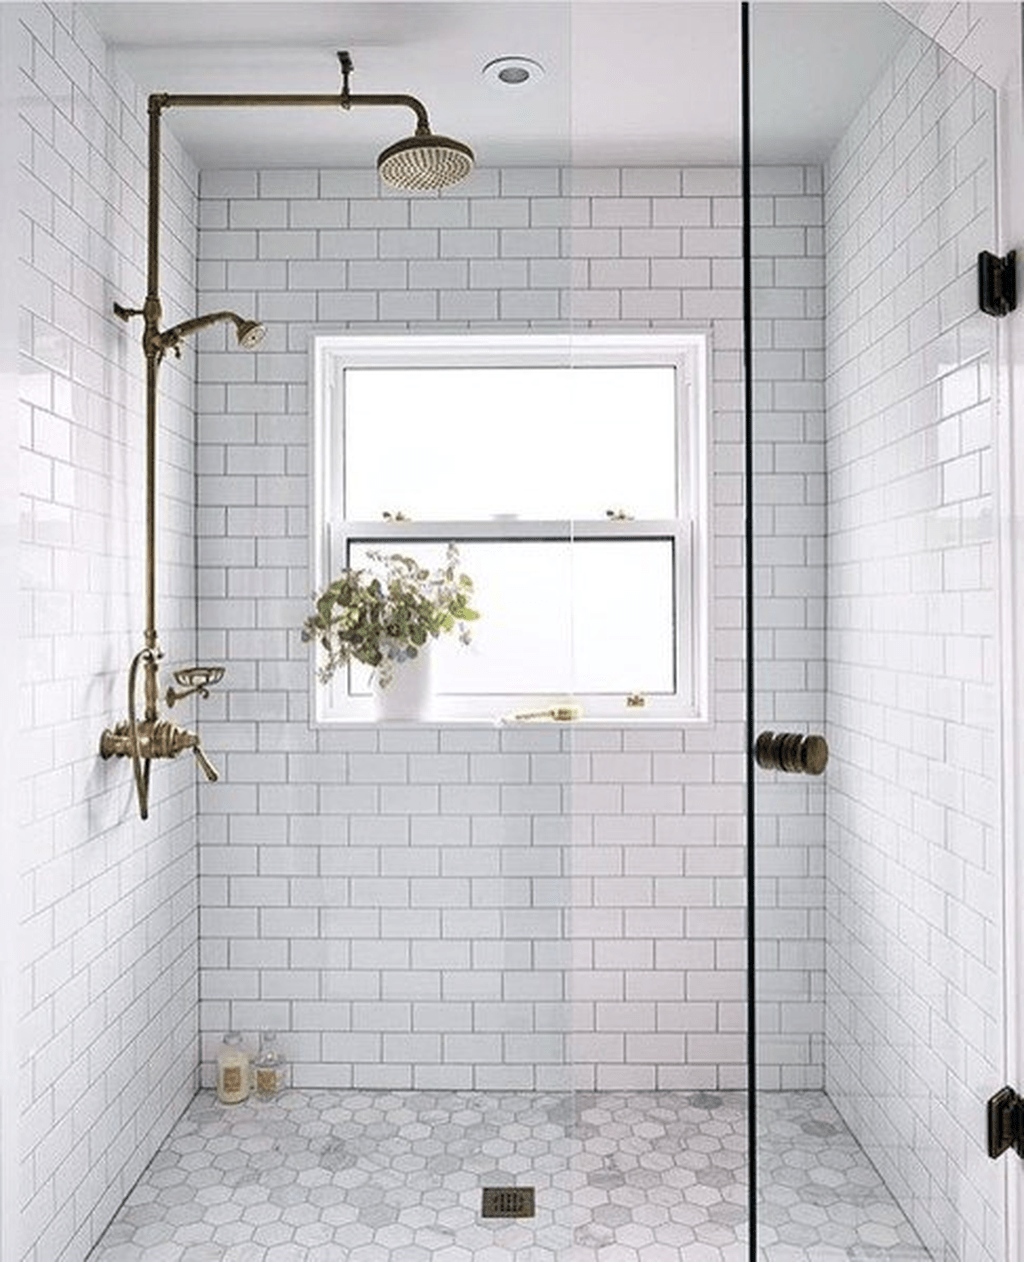 Inspiring Bathroom Tile Showers Design Ideas 16